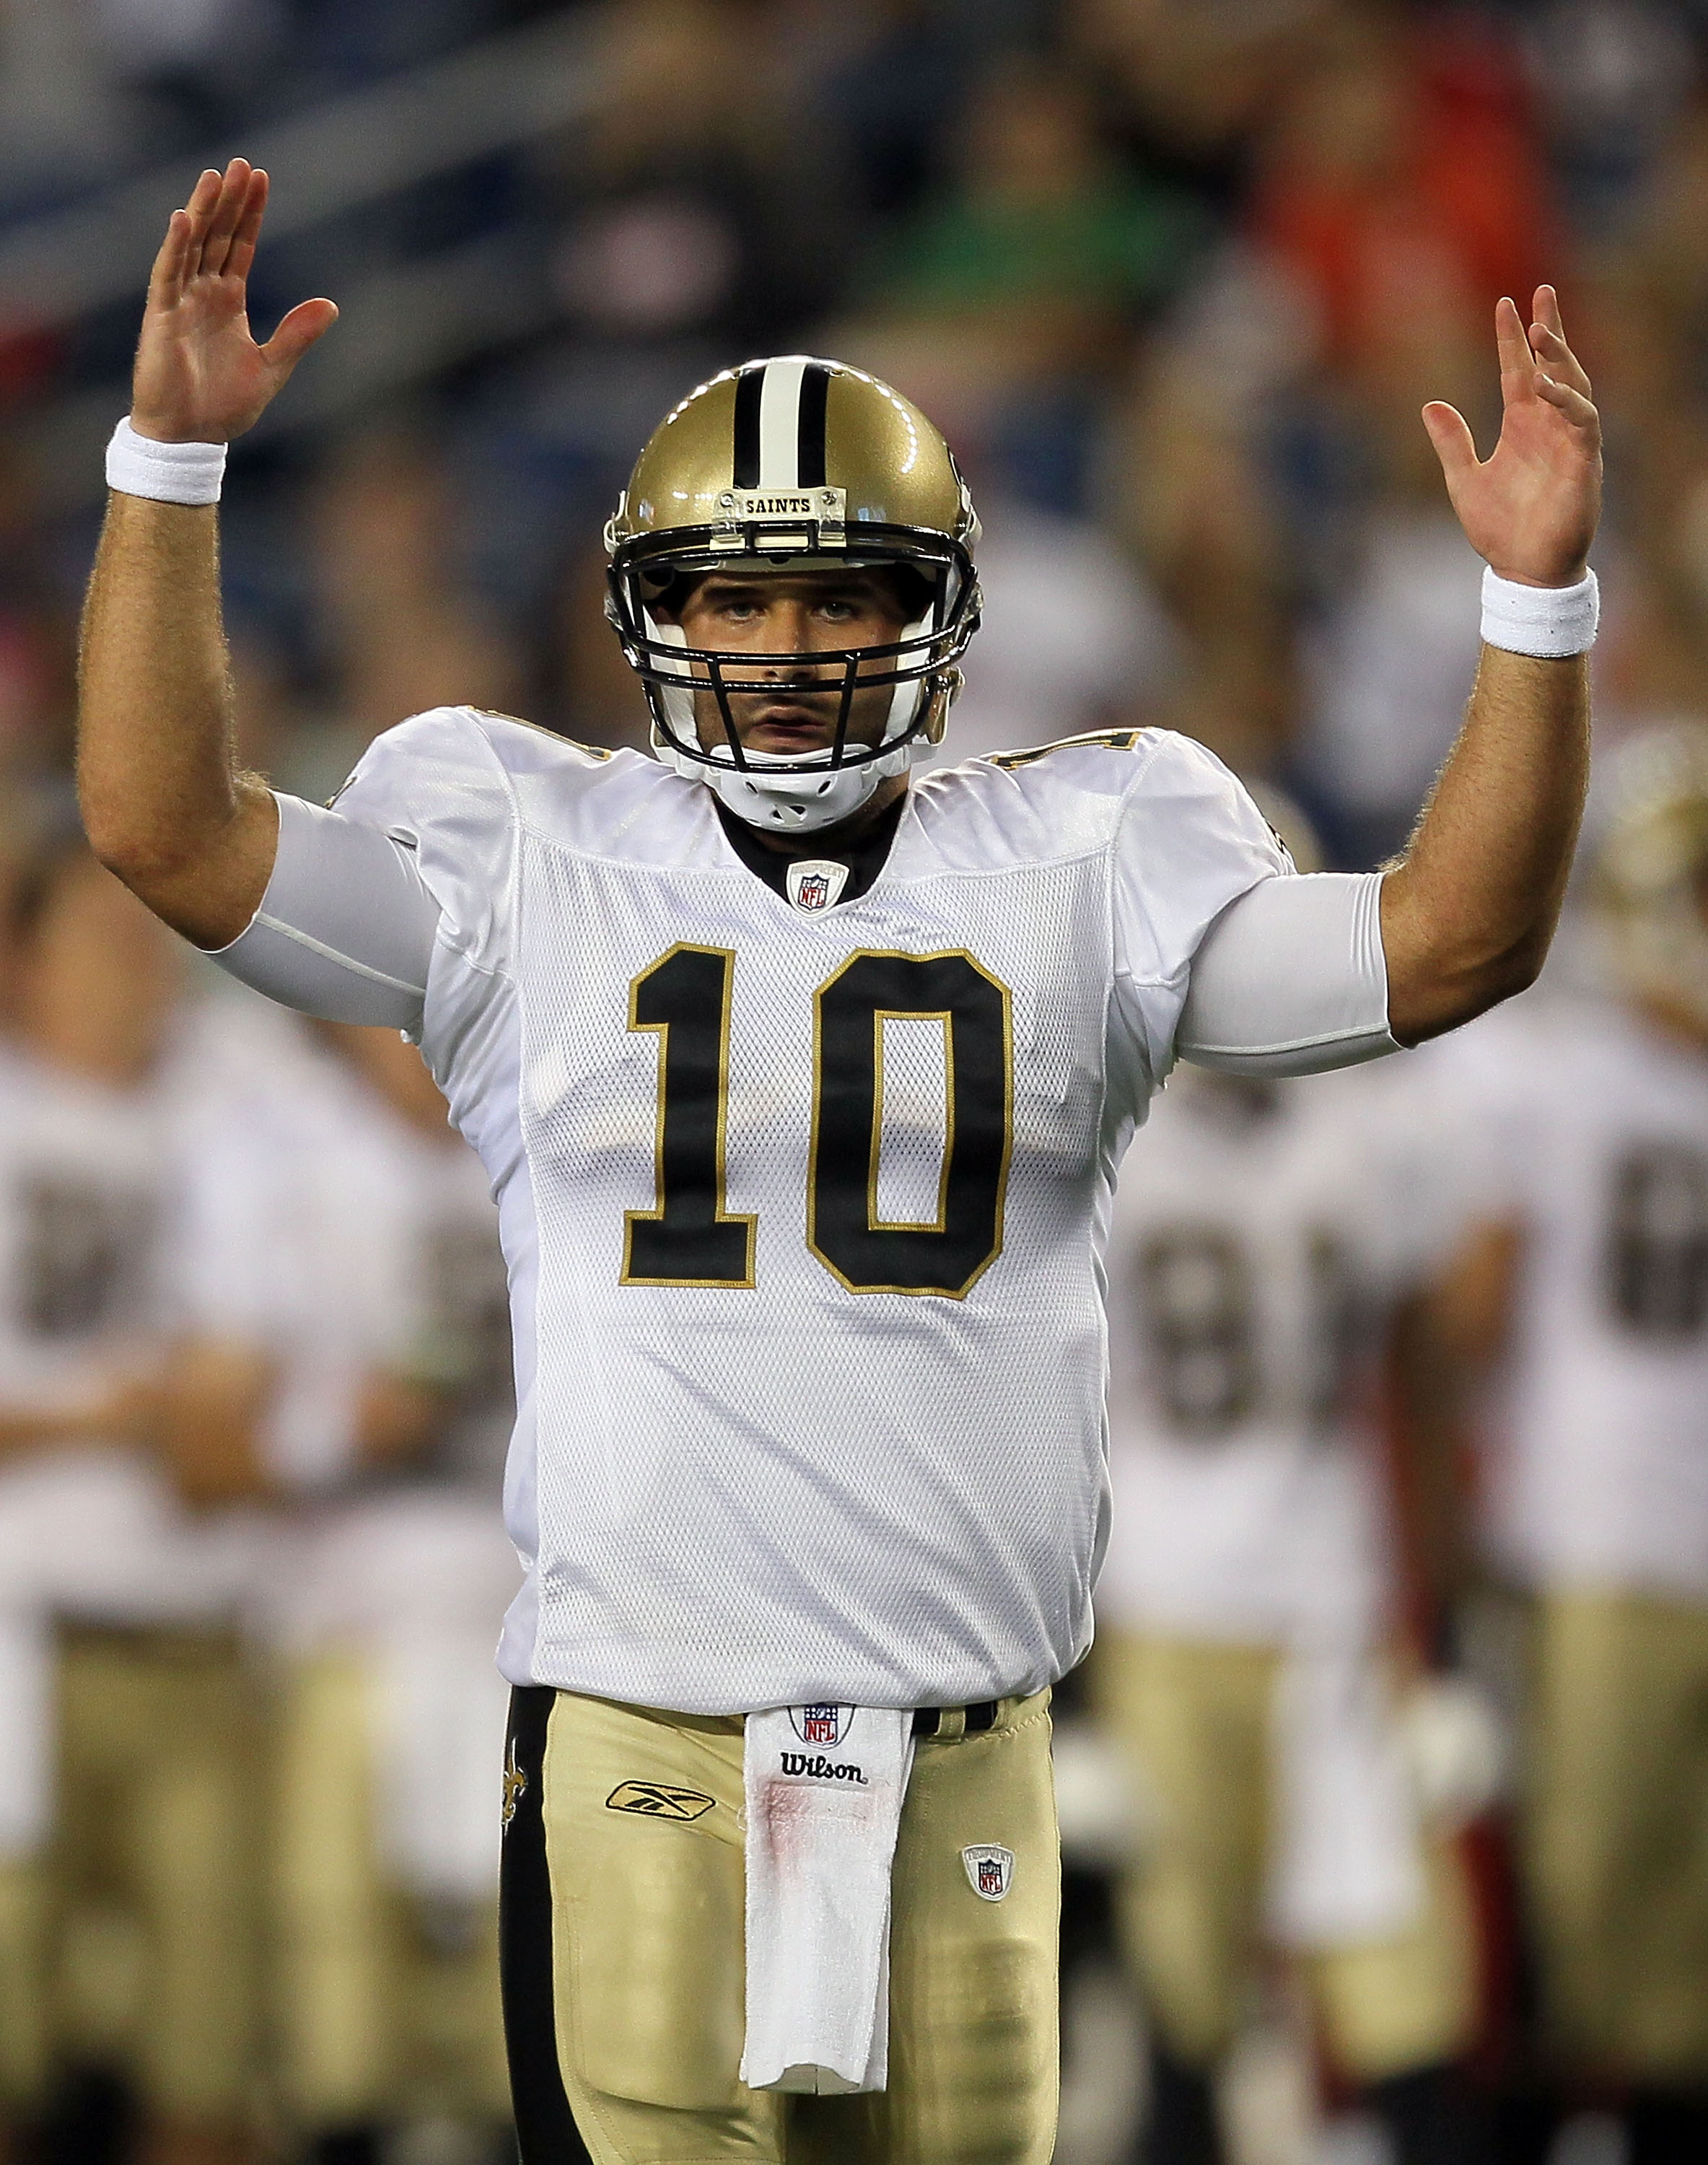 FOXBORO, MA - AUGUST 12: Chase Daniel # 10 of the New Orleans Saints reacts in the second half of the the preseason game against the New England Patriots at Gillette Stadium on August 12, 2010 in Foxboro, Massachusetts. (Photo by Jim Rogash/Getty Images)